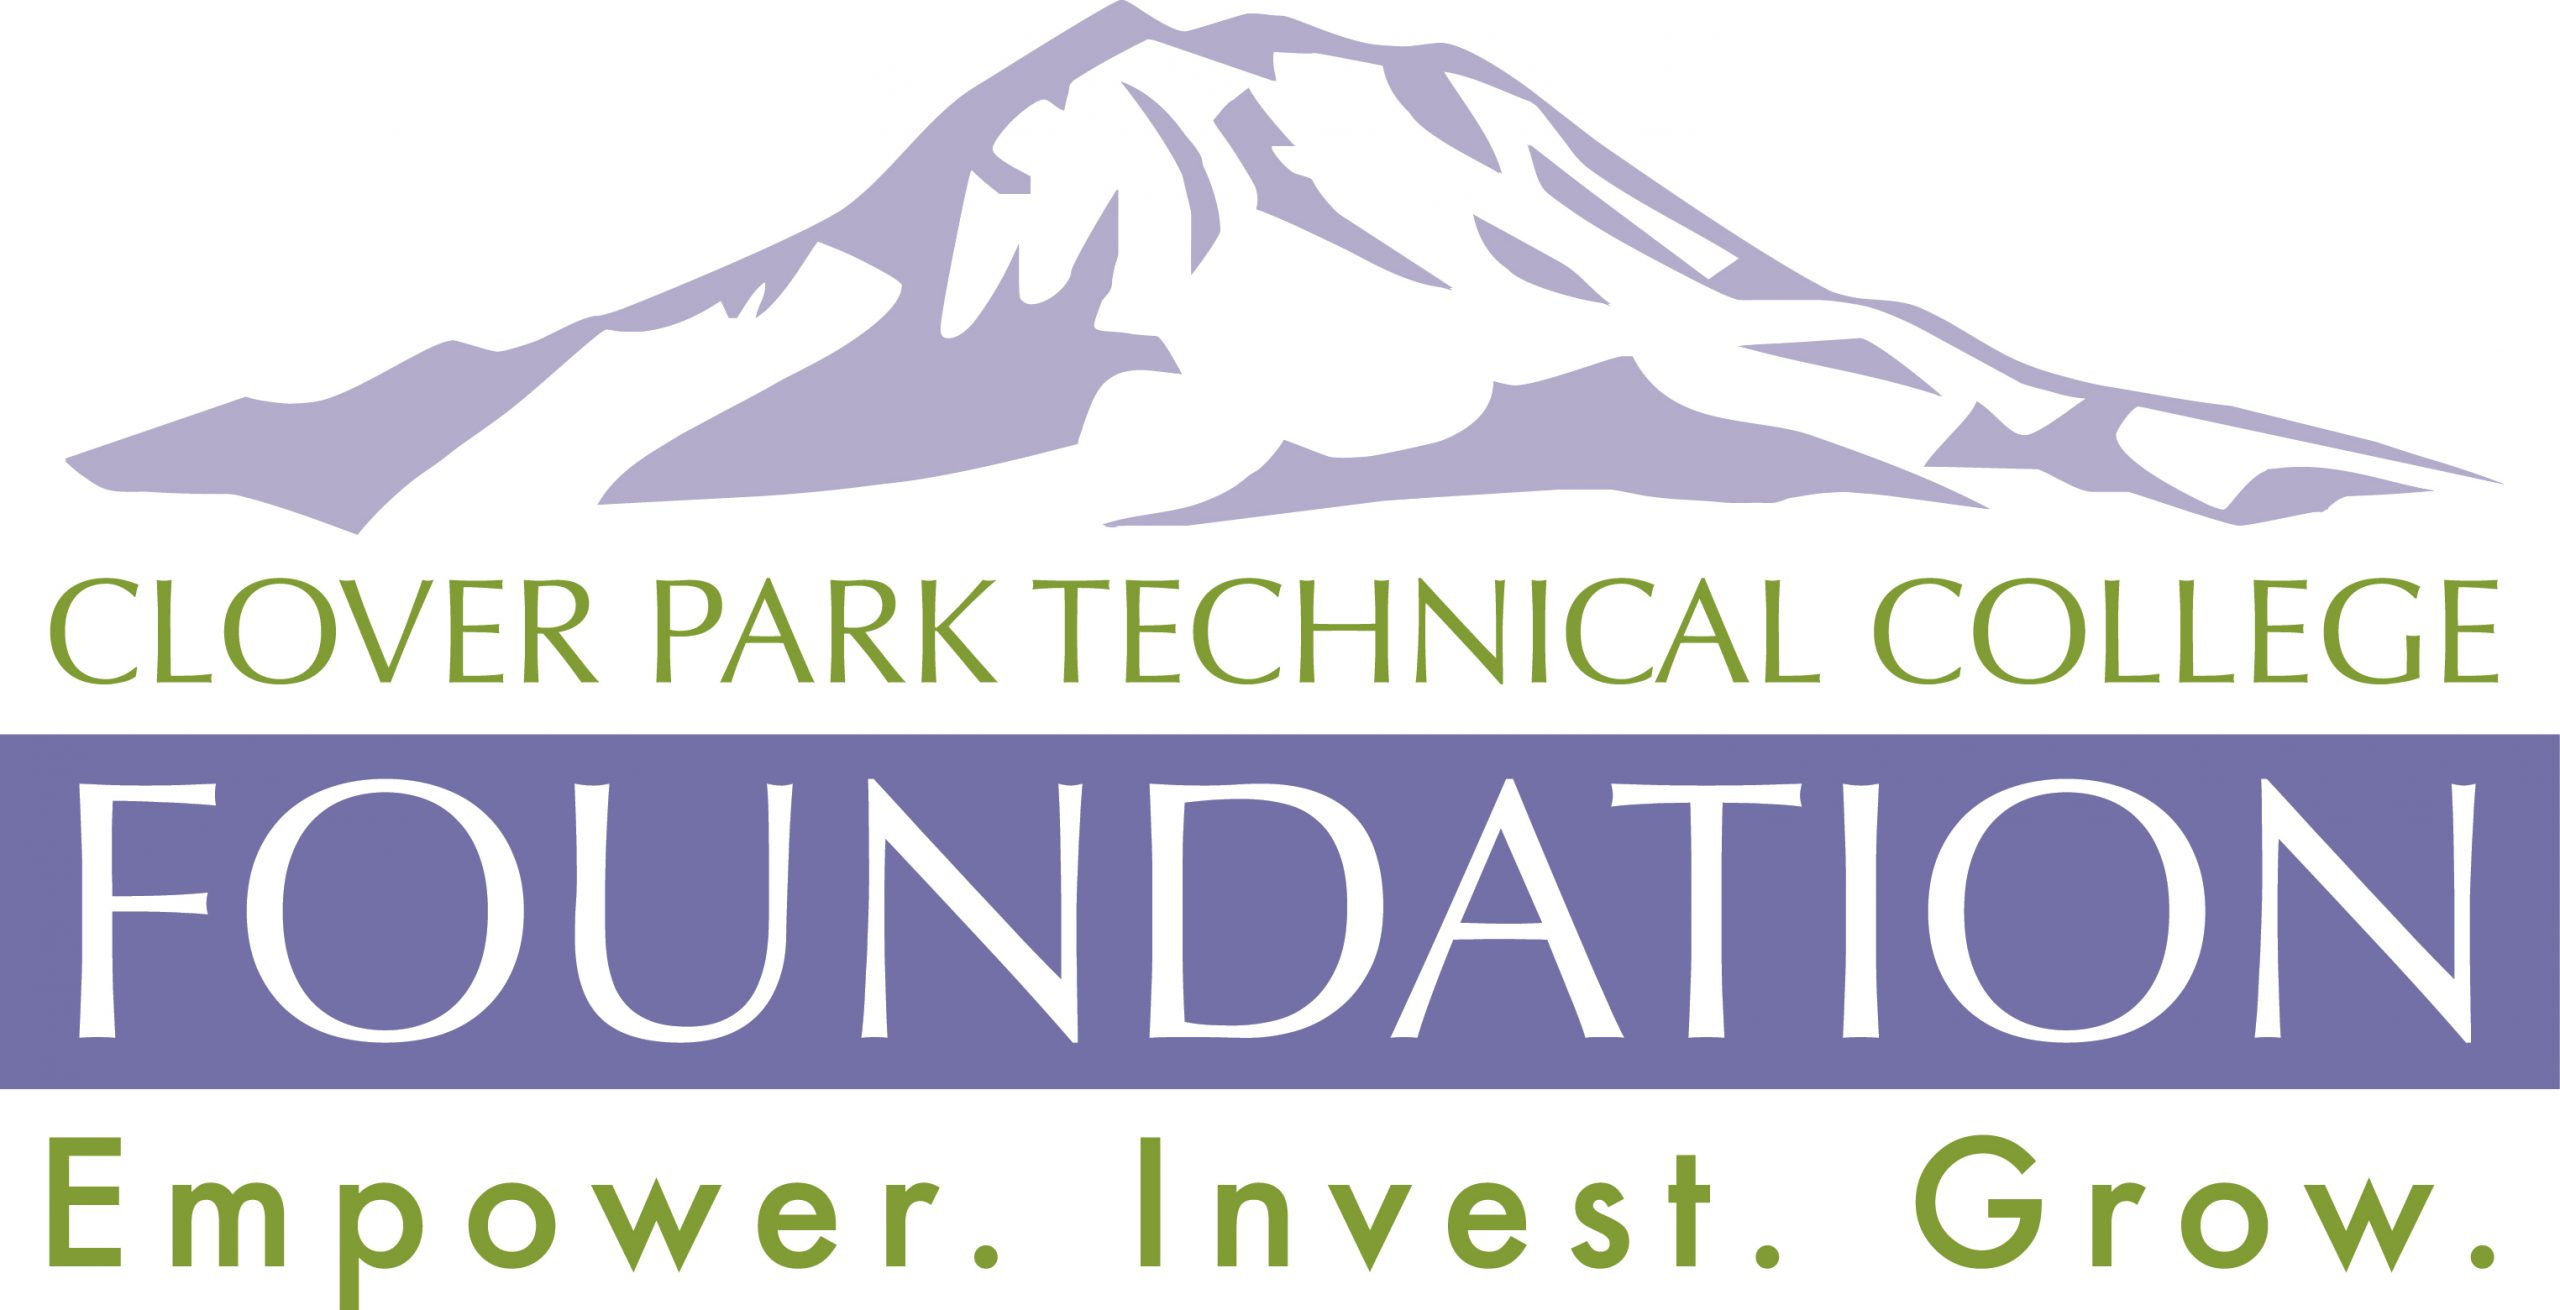 Ways To Give   Cptc Foundation In Clover Park Technical College Calendar